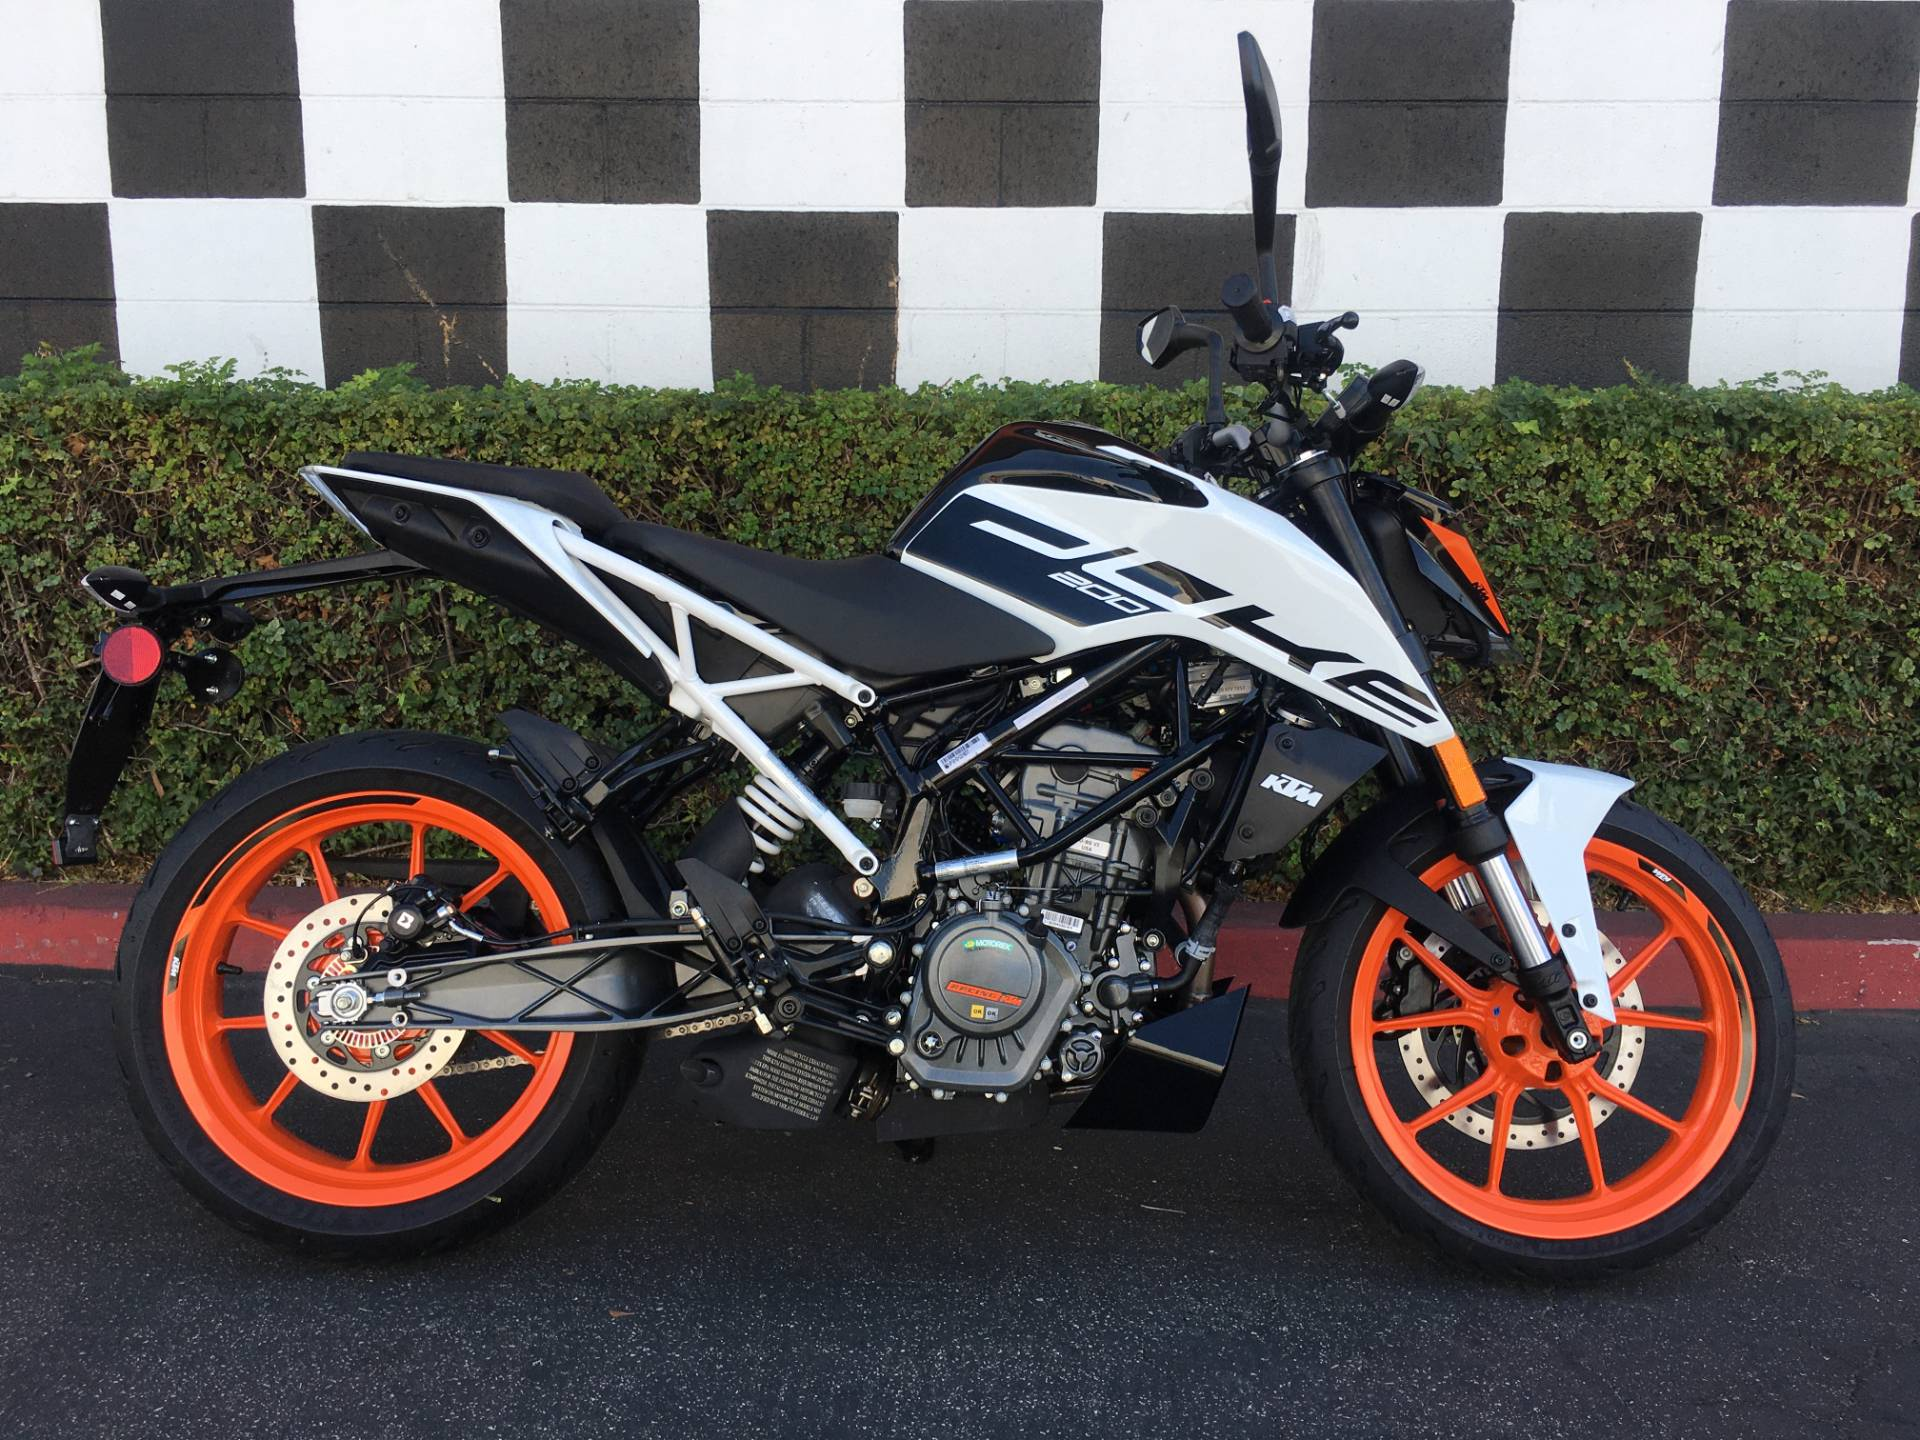 2020 KTM 200 Duke in Costa Mesa, California - Photo 1